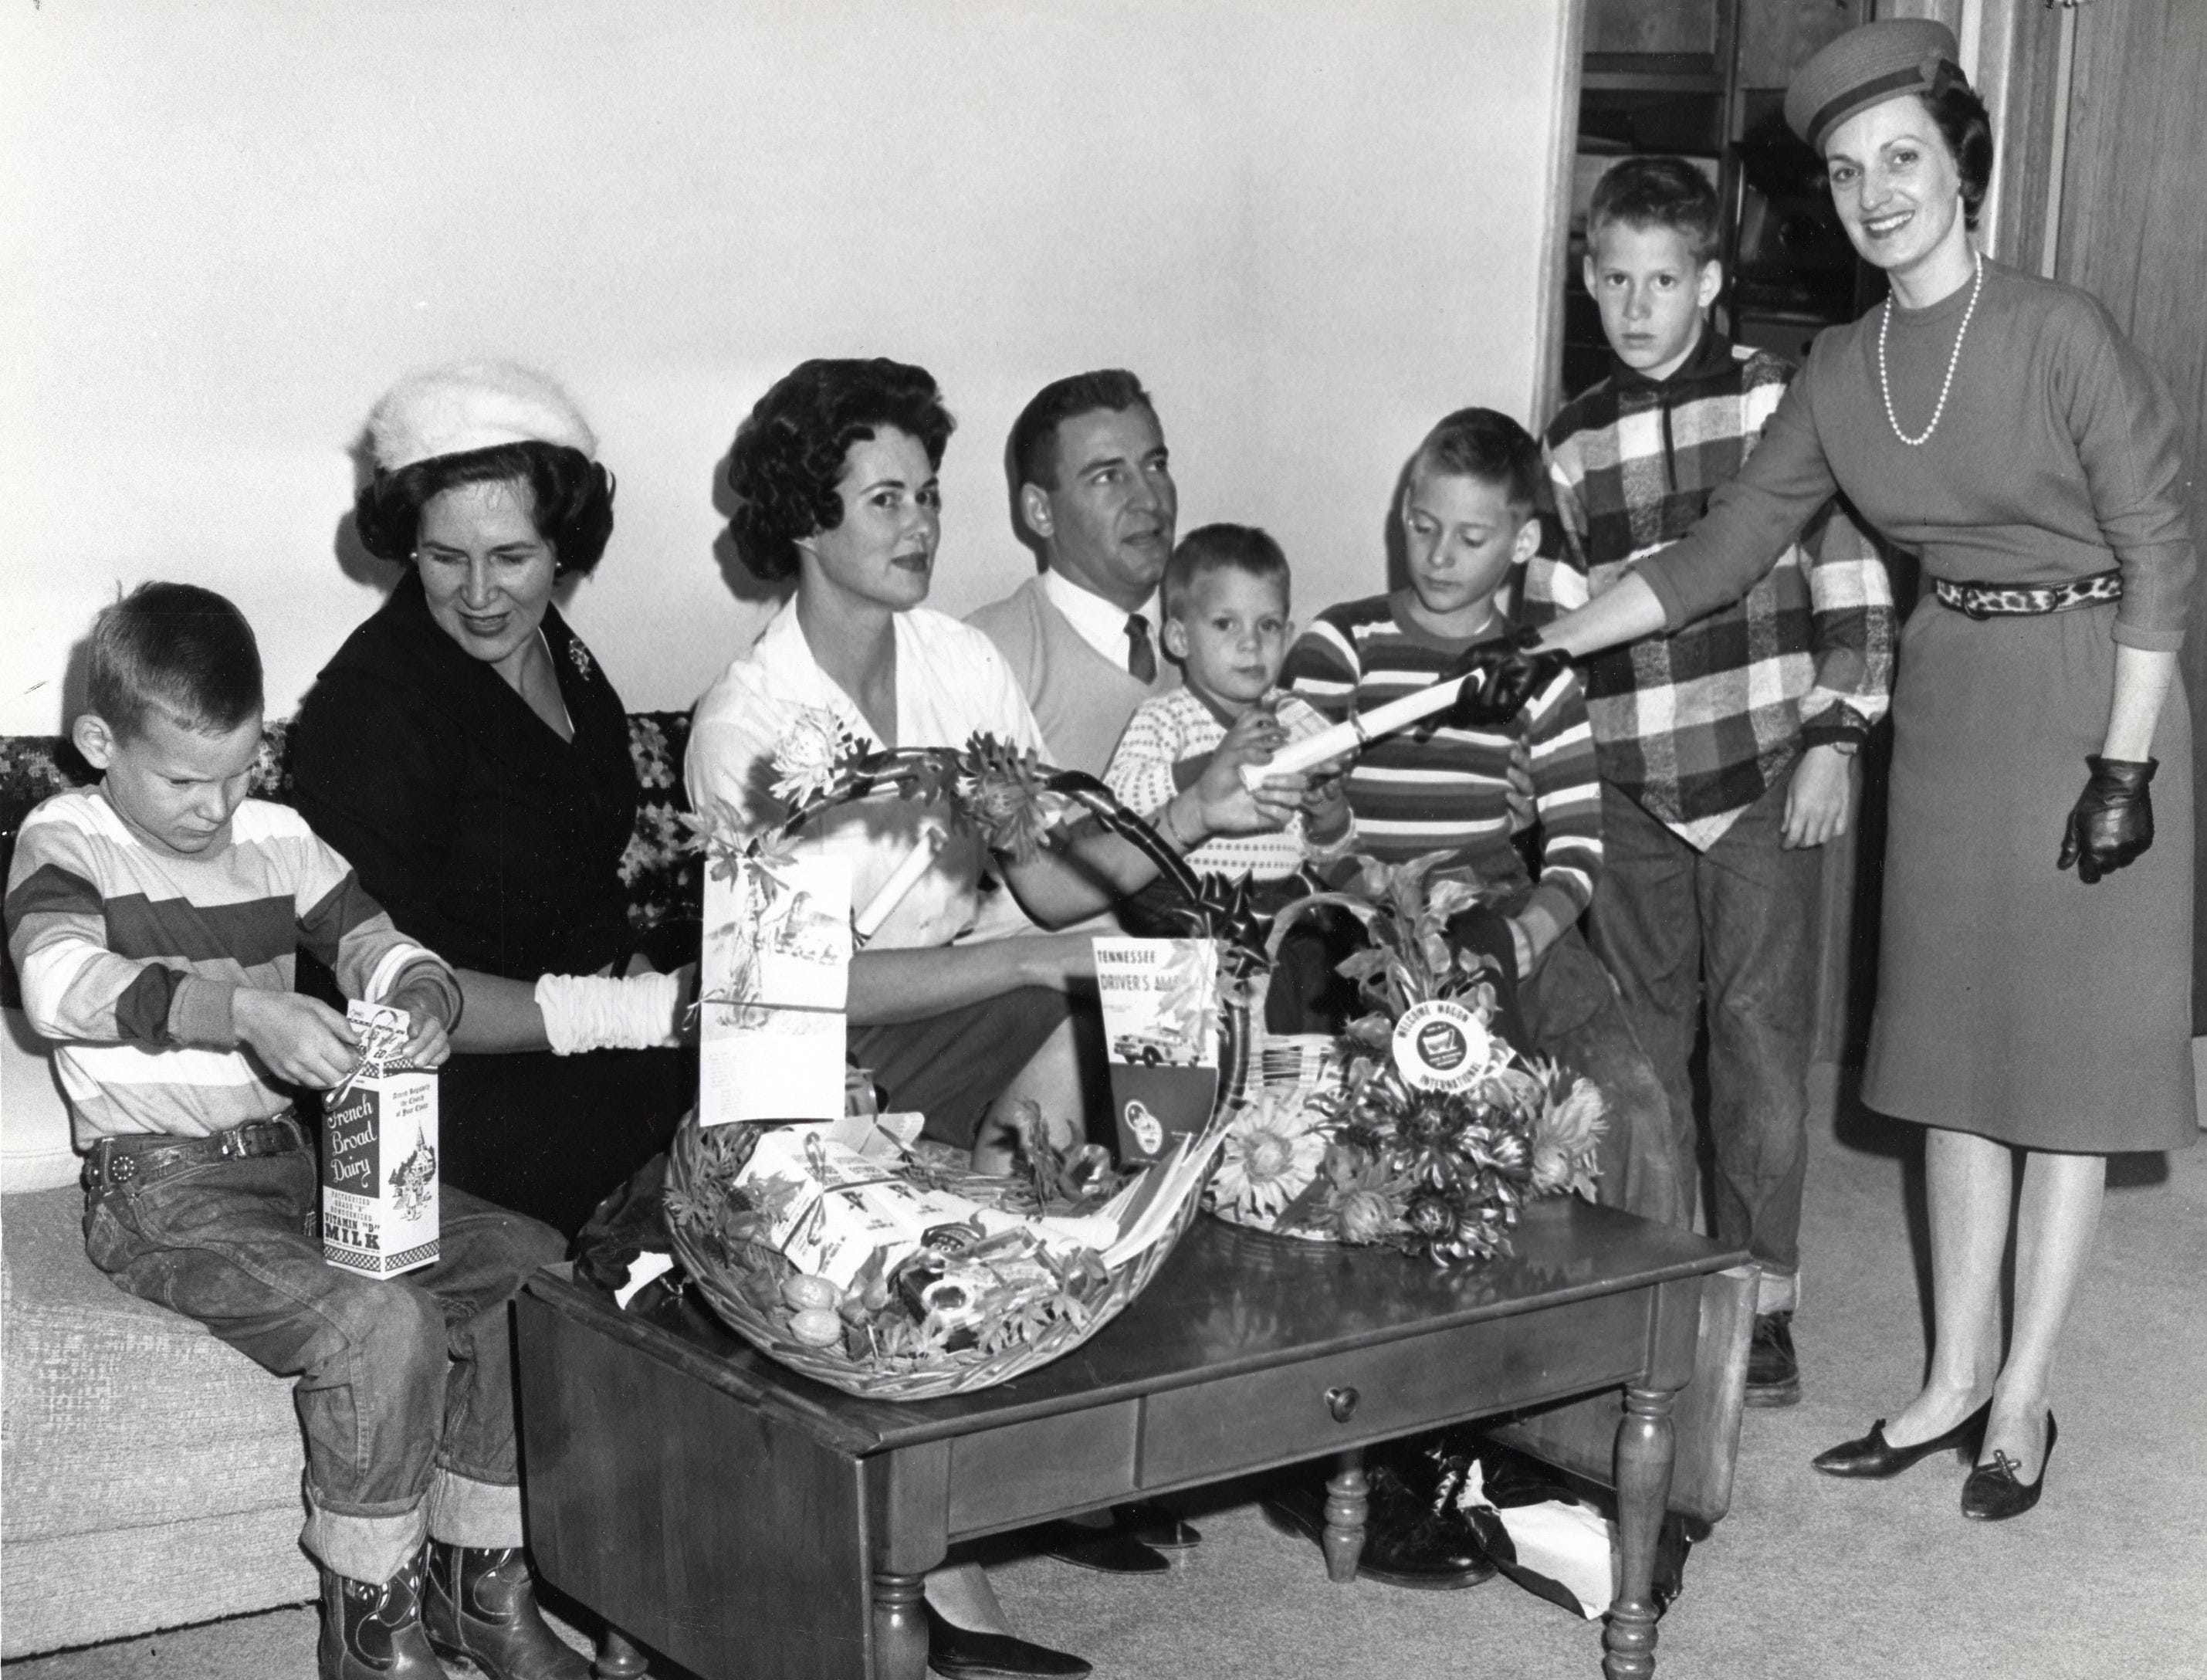 The Welcome Wagon calls on Doug Dickey and family in January, 1964. Pictured are David Dickey, Betty Scott, JoAnne Dickey, Doug Dickey, Daryl Dickey, Dan Dickey, Don Dickey and Sara Ann Oakley. Scott and Oakley are with the Welcome Wagon.